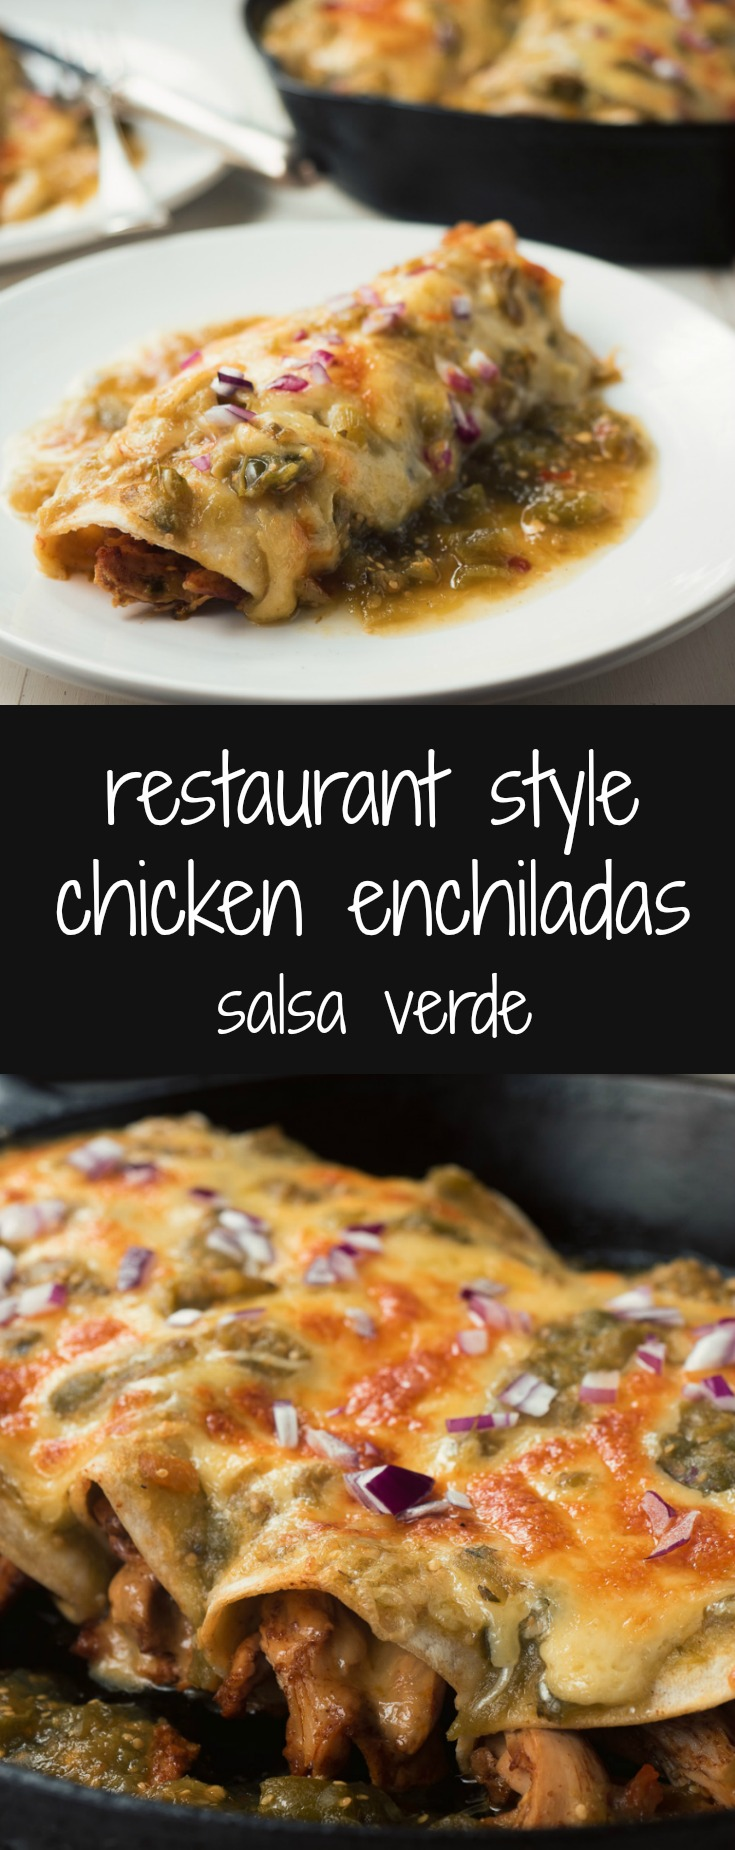 Better than restaurant chicken enchiladas verdes.